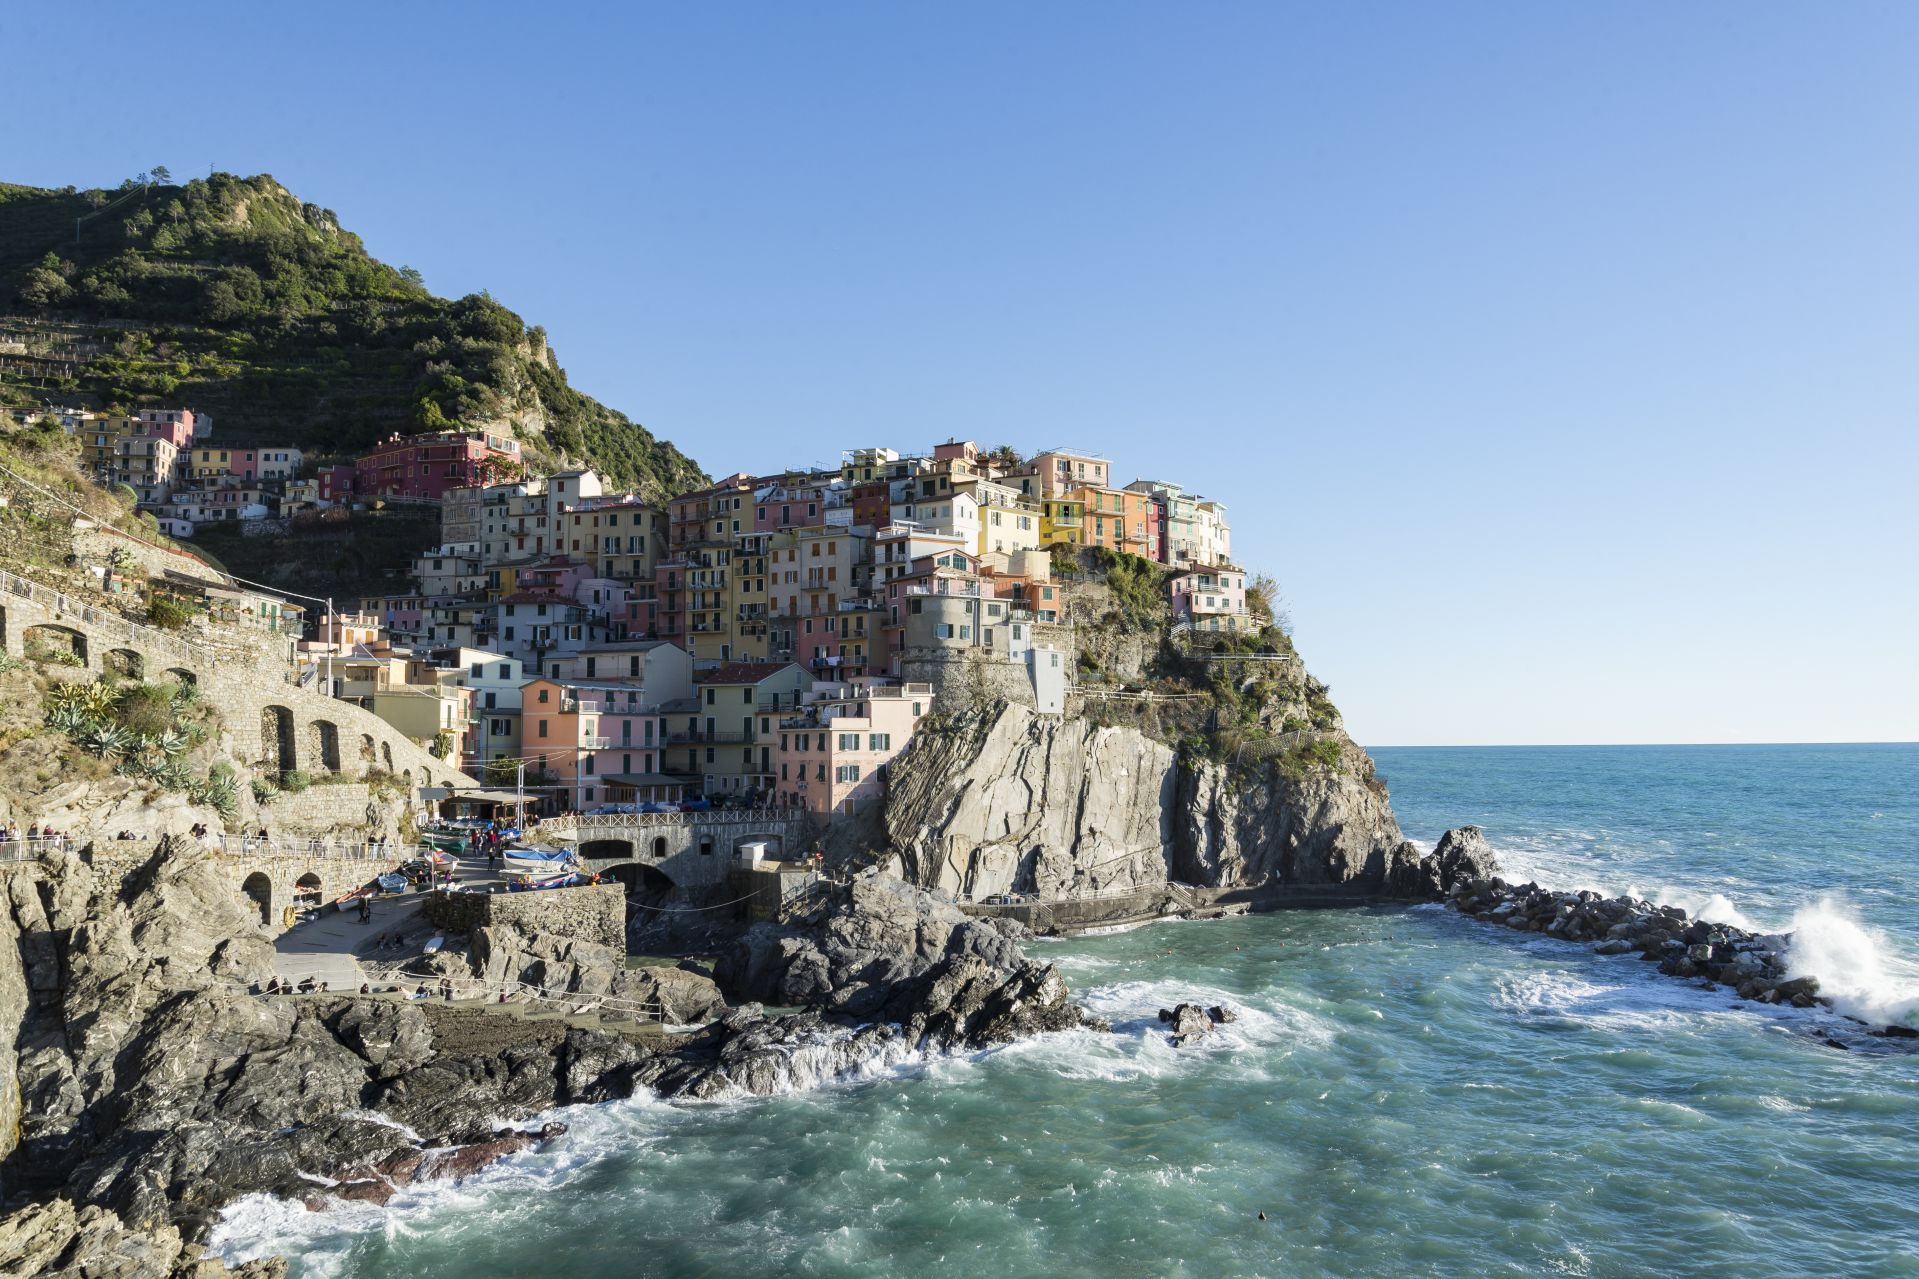 MacDonald, James Trinity Rome Fall 2018 View of village of Manarola in La Spezia, Italy from the cliff side trail along the coast. Over one weekend in early December, I visited the Cinque Terre Villages. The coastline views and the scenic hiking trails were breath-taking, but what caught my eye the most were the beautiful colors of the Ligurian town houses that decorated these villages. A little faded due to the midday sun, these houses still stood tall and vibrant, perched up on cliffside in their settled, organized blocks. With the town houses coupled with the rock-face and an active sea, I aimed to capture the beautiful scenes that attract nearly two and a half million visitors each year. Having now visited them myself, I have come to understand a little better why these rustic fishing villages are so beloved by so many. This photo was selected for the 2019 Barlow Off-Campus Photography Exhibition and shown at the 2019 Mount David Summit on March 29, 2019.